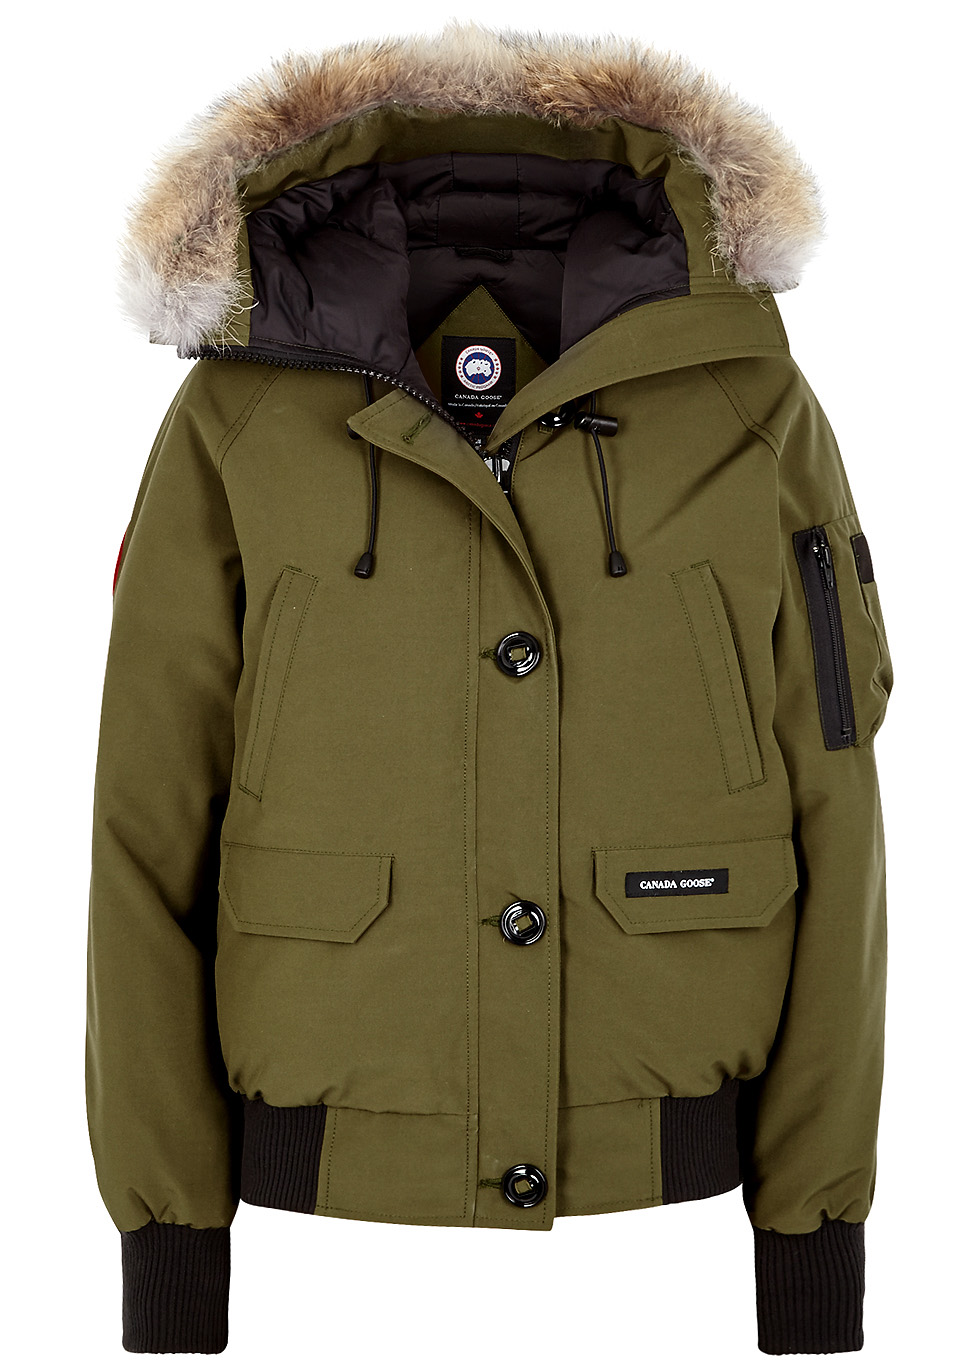 moncler coat cheetham hill